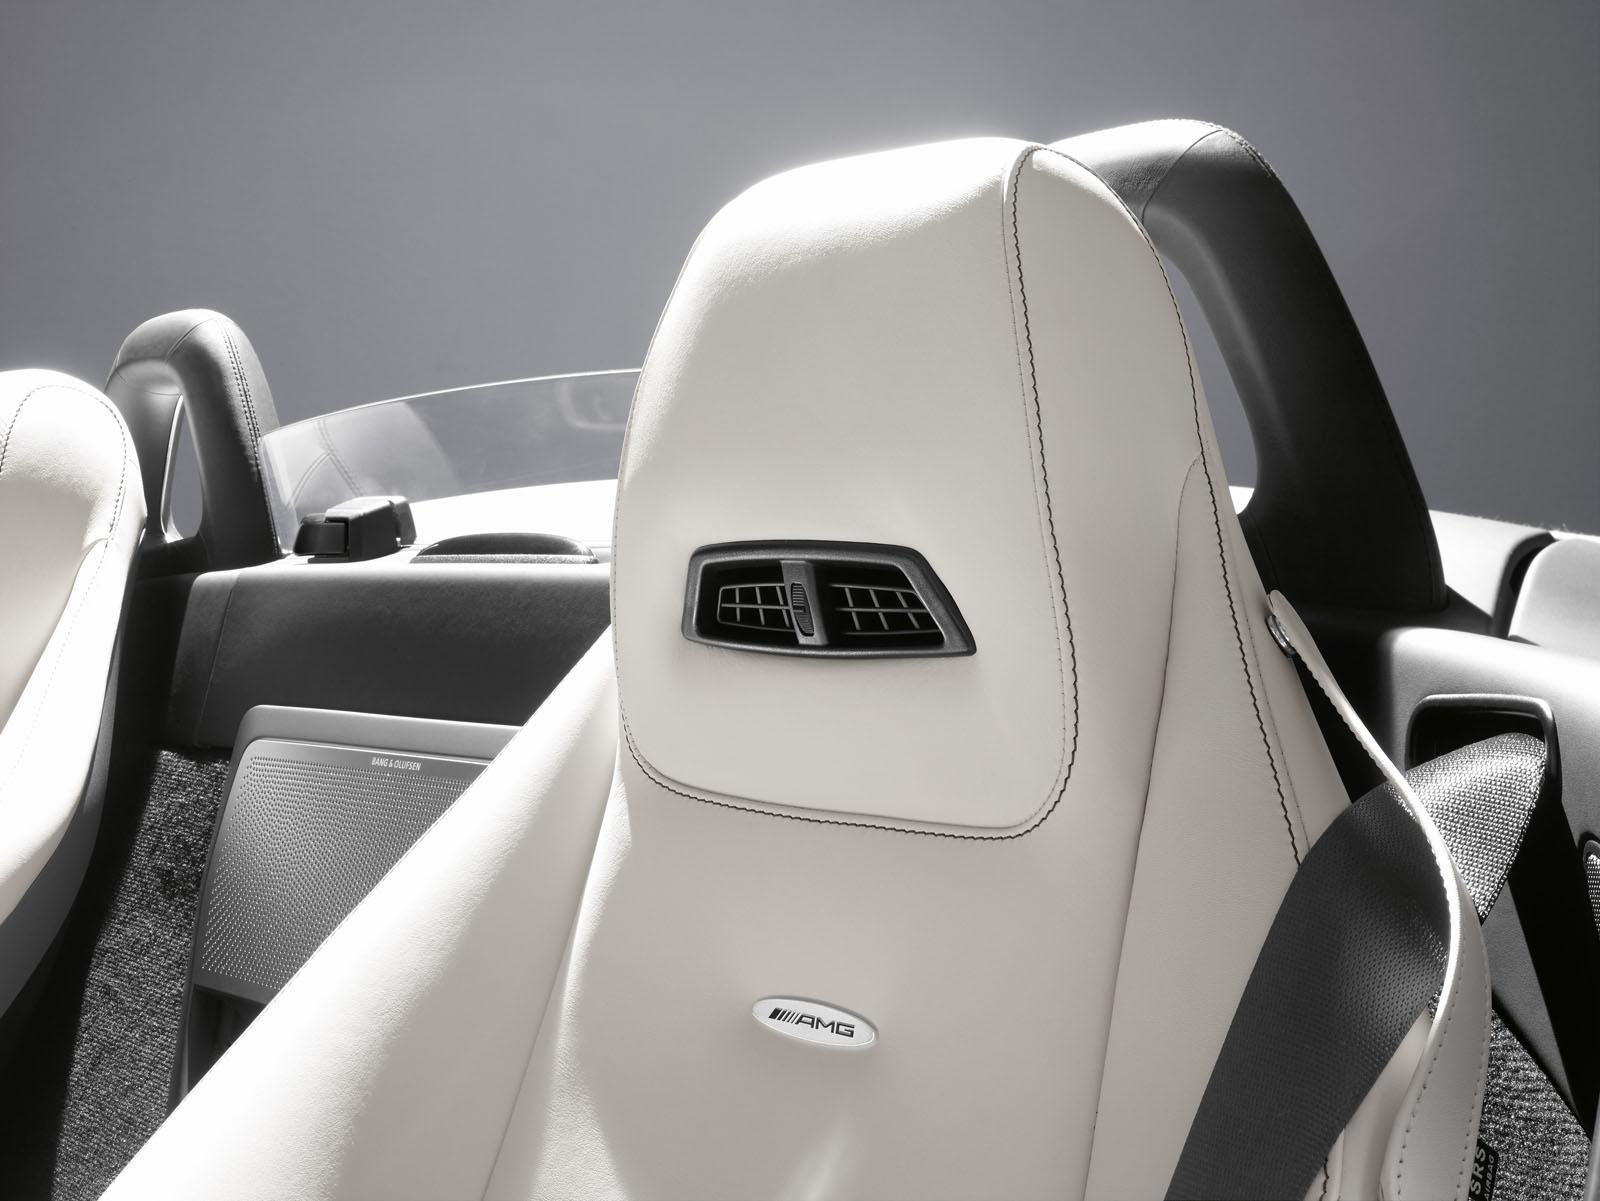 Sls Amg Roadster Interior The Sls Amg Roadster Will Have